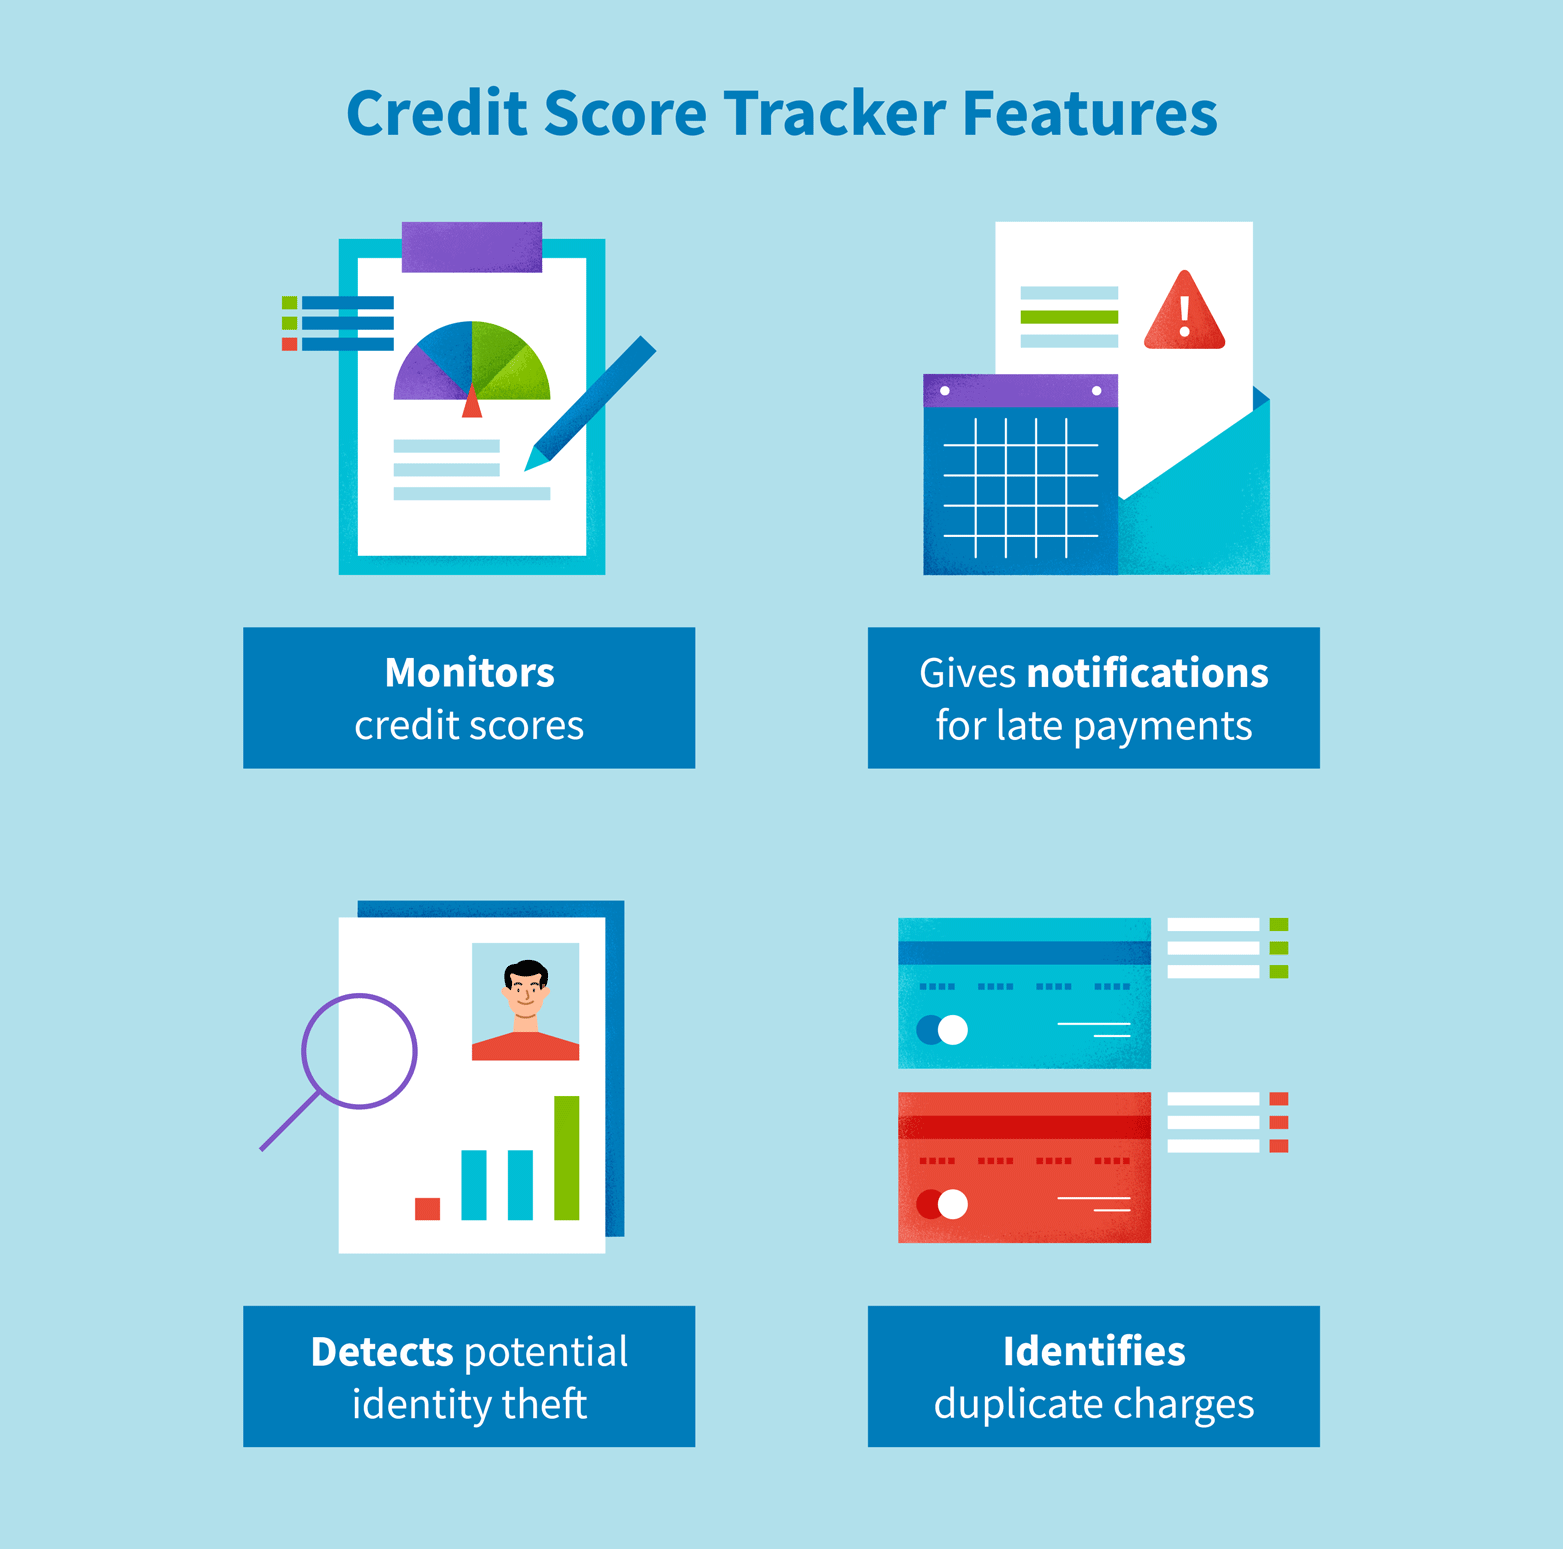 Credit score tracker features include credit score monitoring, notifications of late payments, potential identity theft detection, and duplicate charge identification.